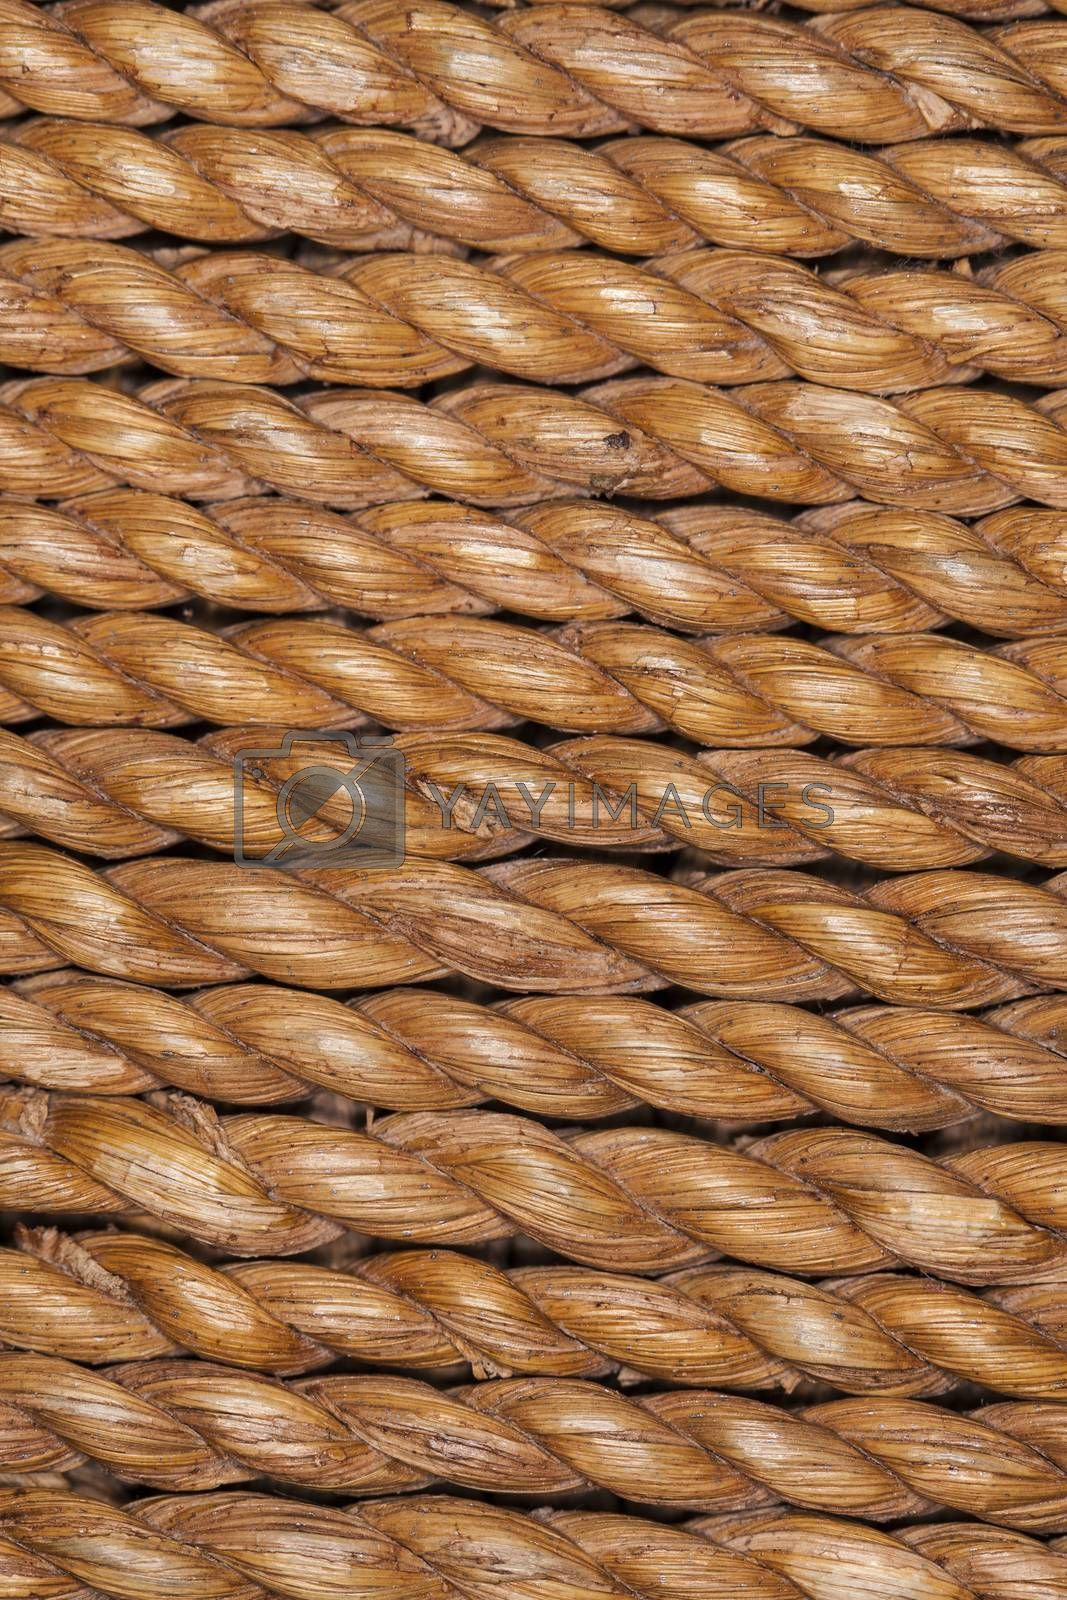 wooden rope